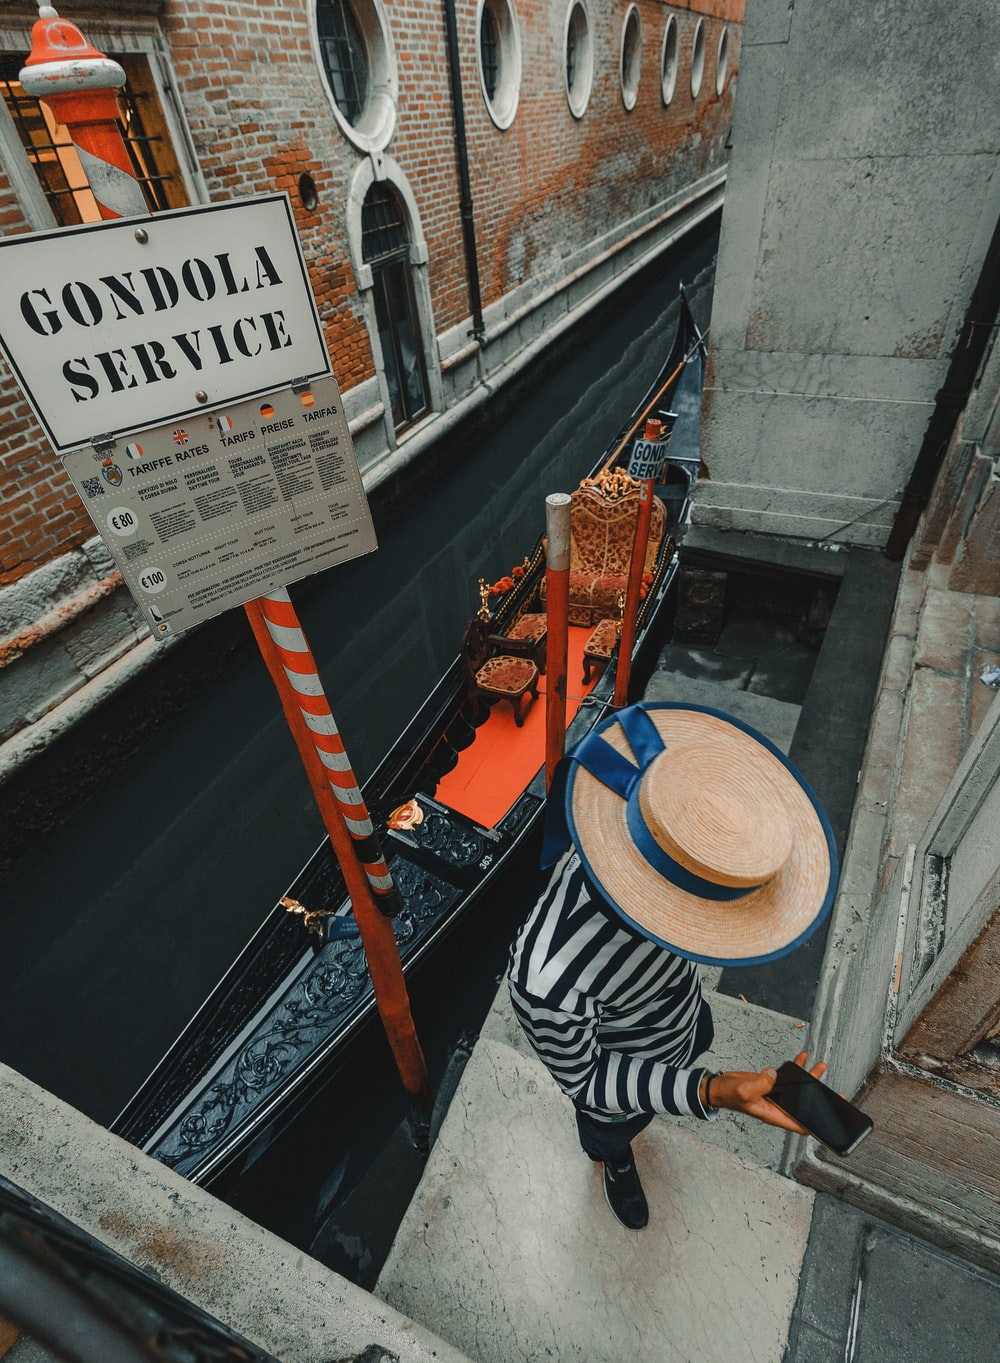 person using phone while standing near Gondola beside Venice canal during daytime